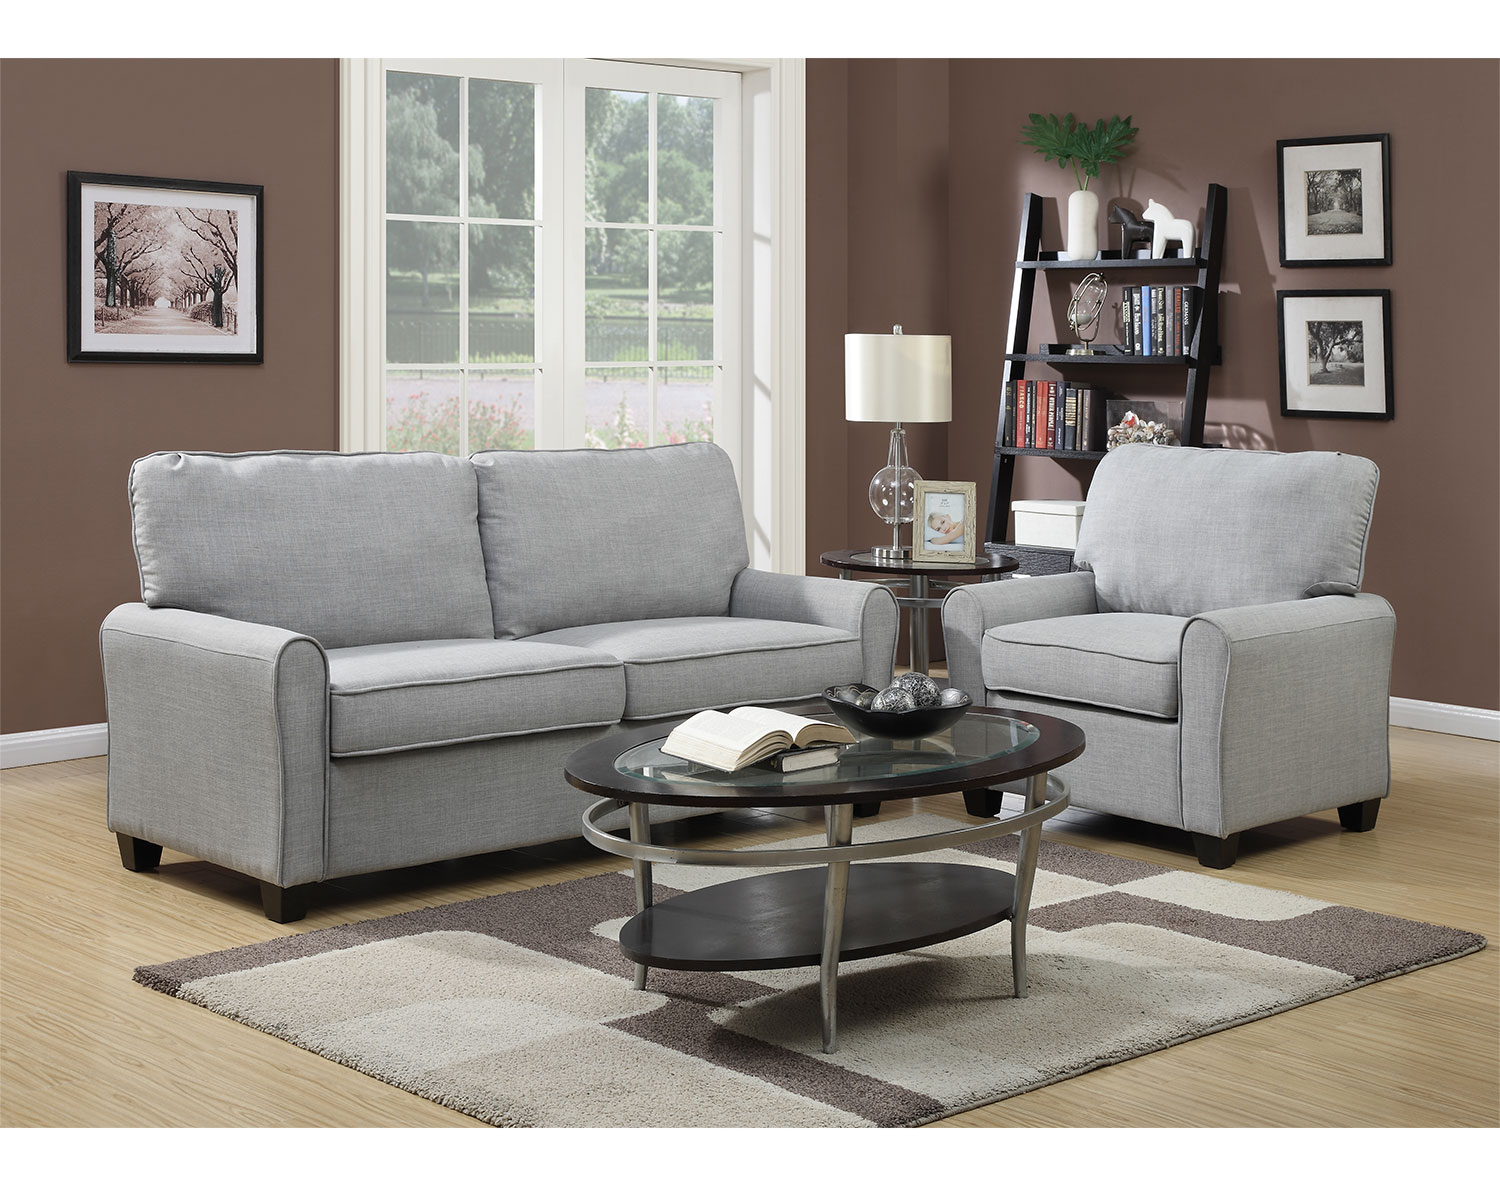 Contact City Furniture, South Florida's ultimate furniture store. As a premier South Florida furniture and design destination, we pride ourselves in providing the latest styles in furniture and decor while offering great quality and value.